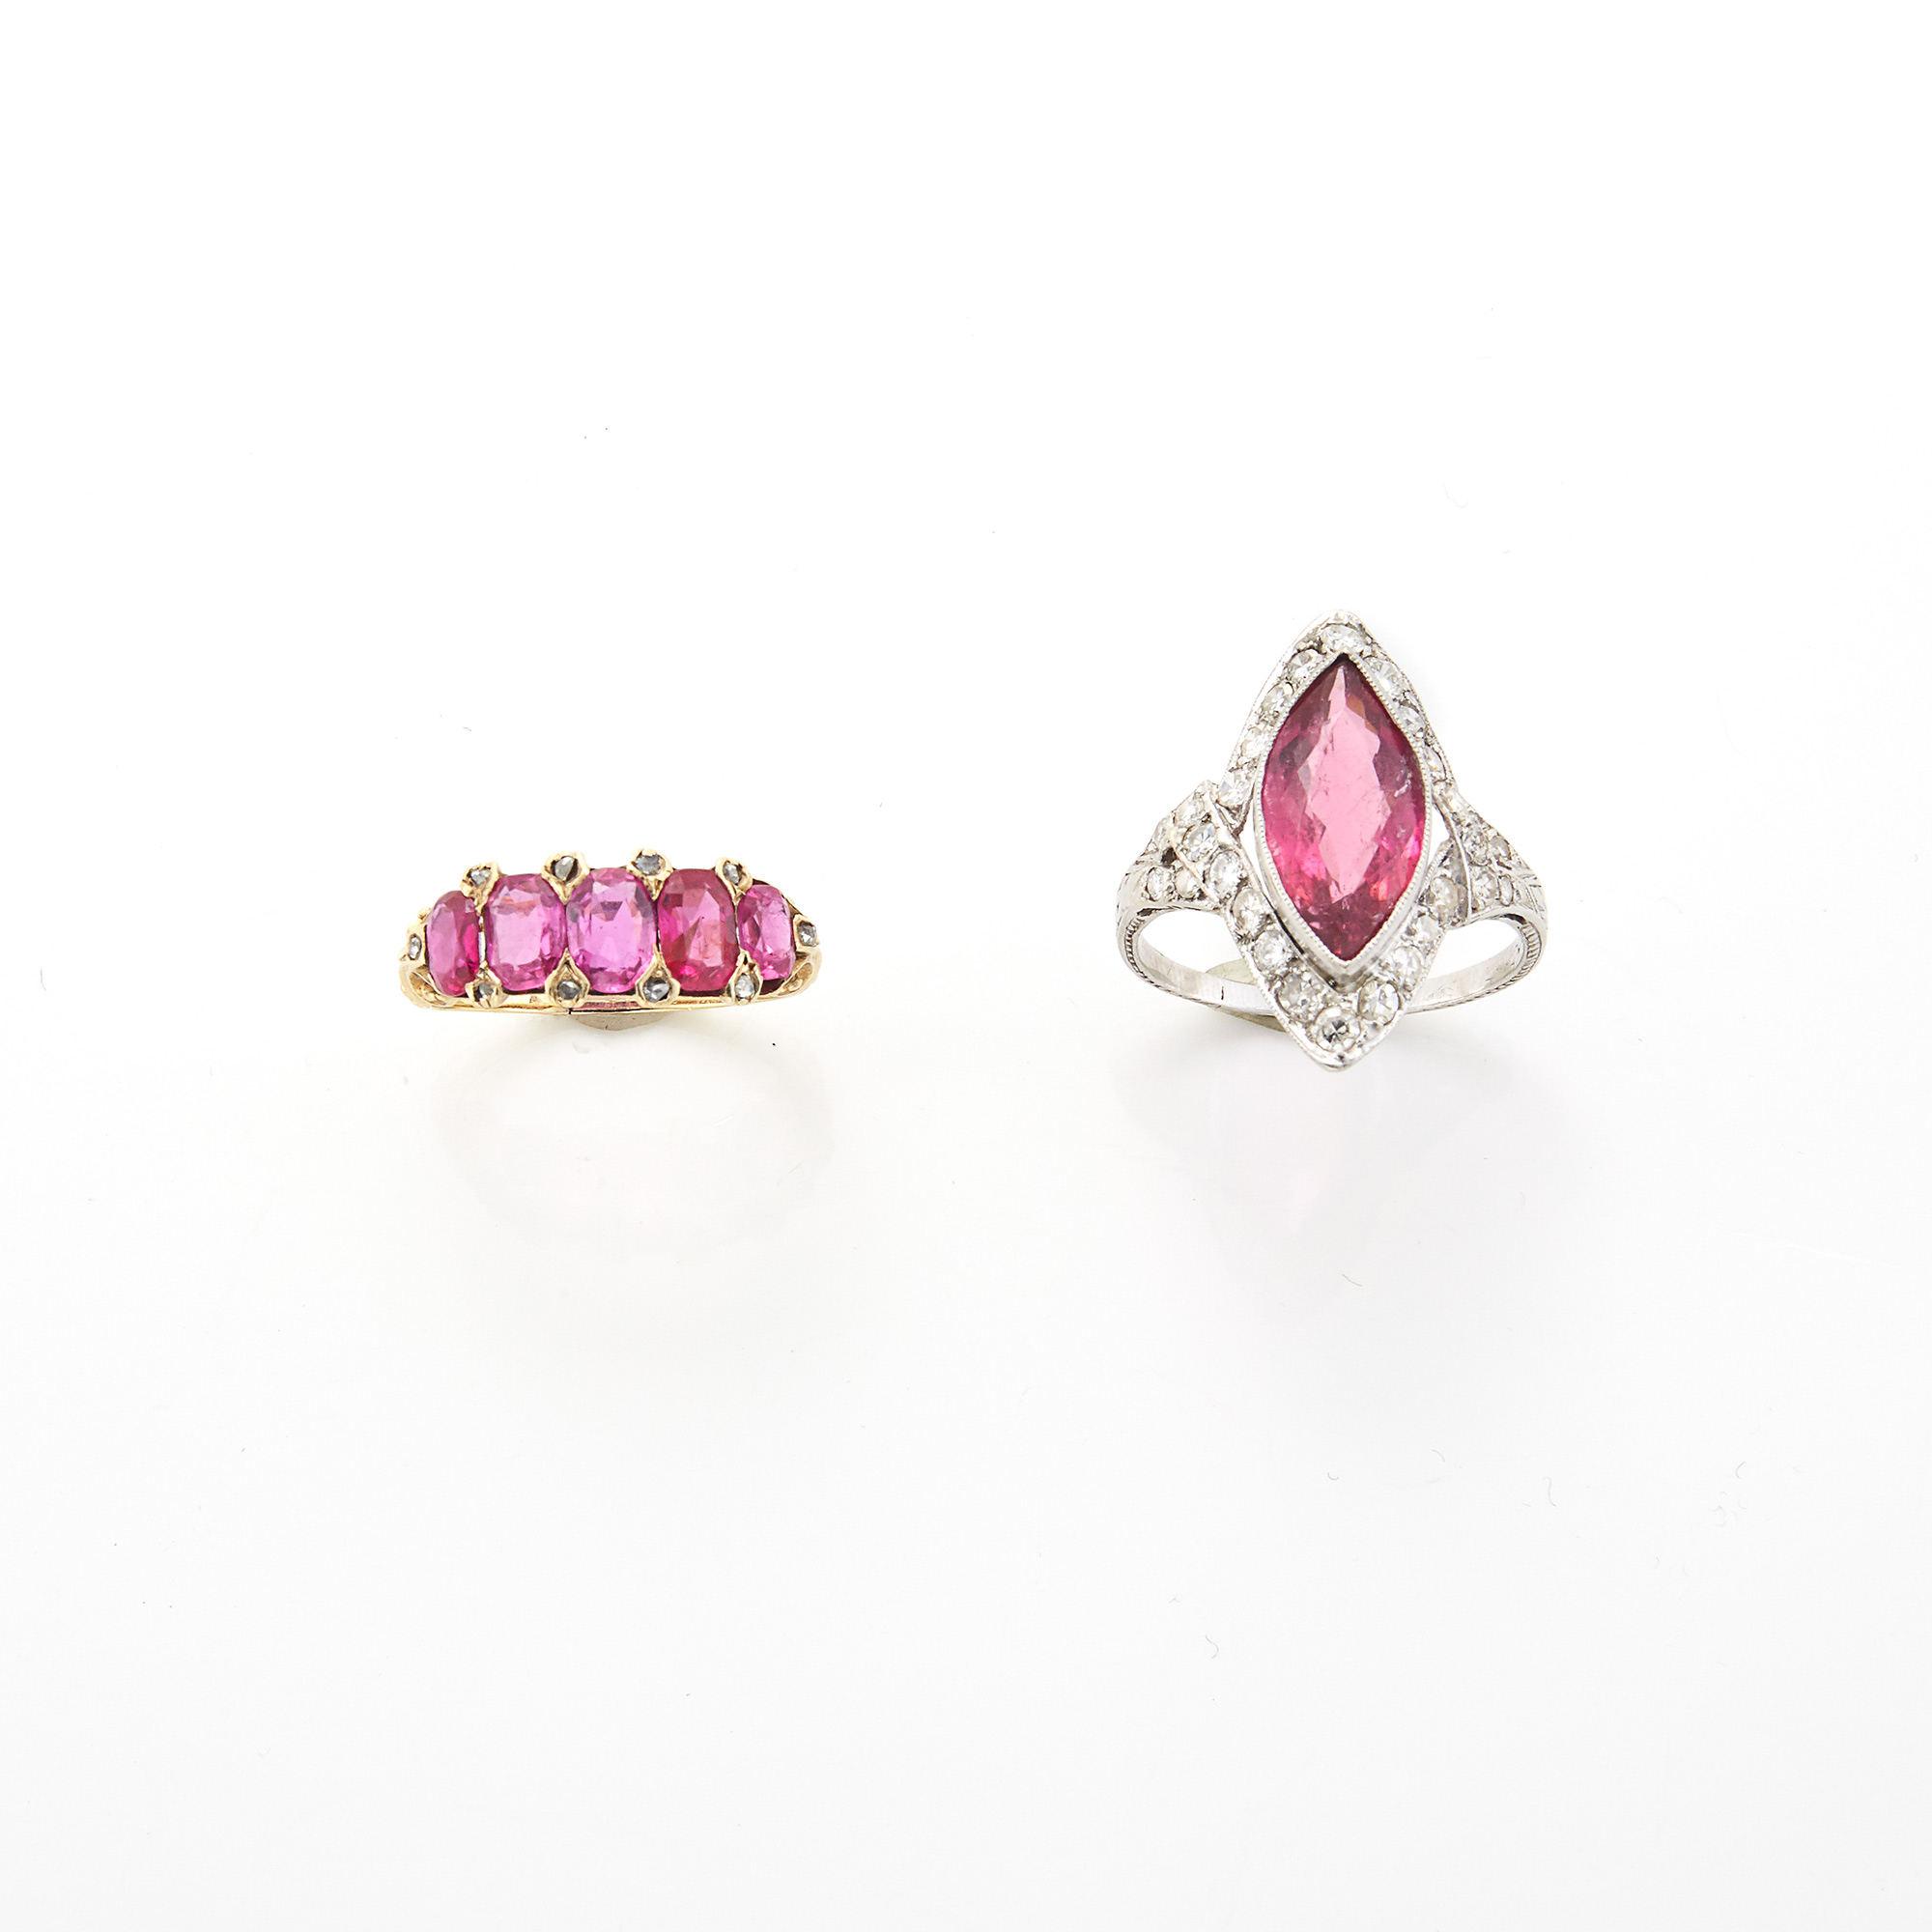 Lot image - Platinum, Pink Tourmaline and Diamond Ring and Gold, Ruby and Diamond Ring